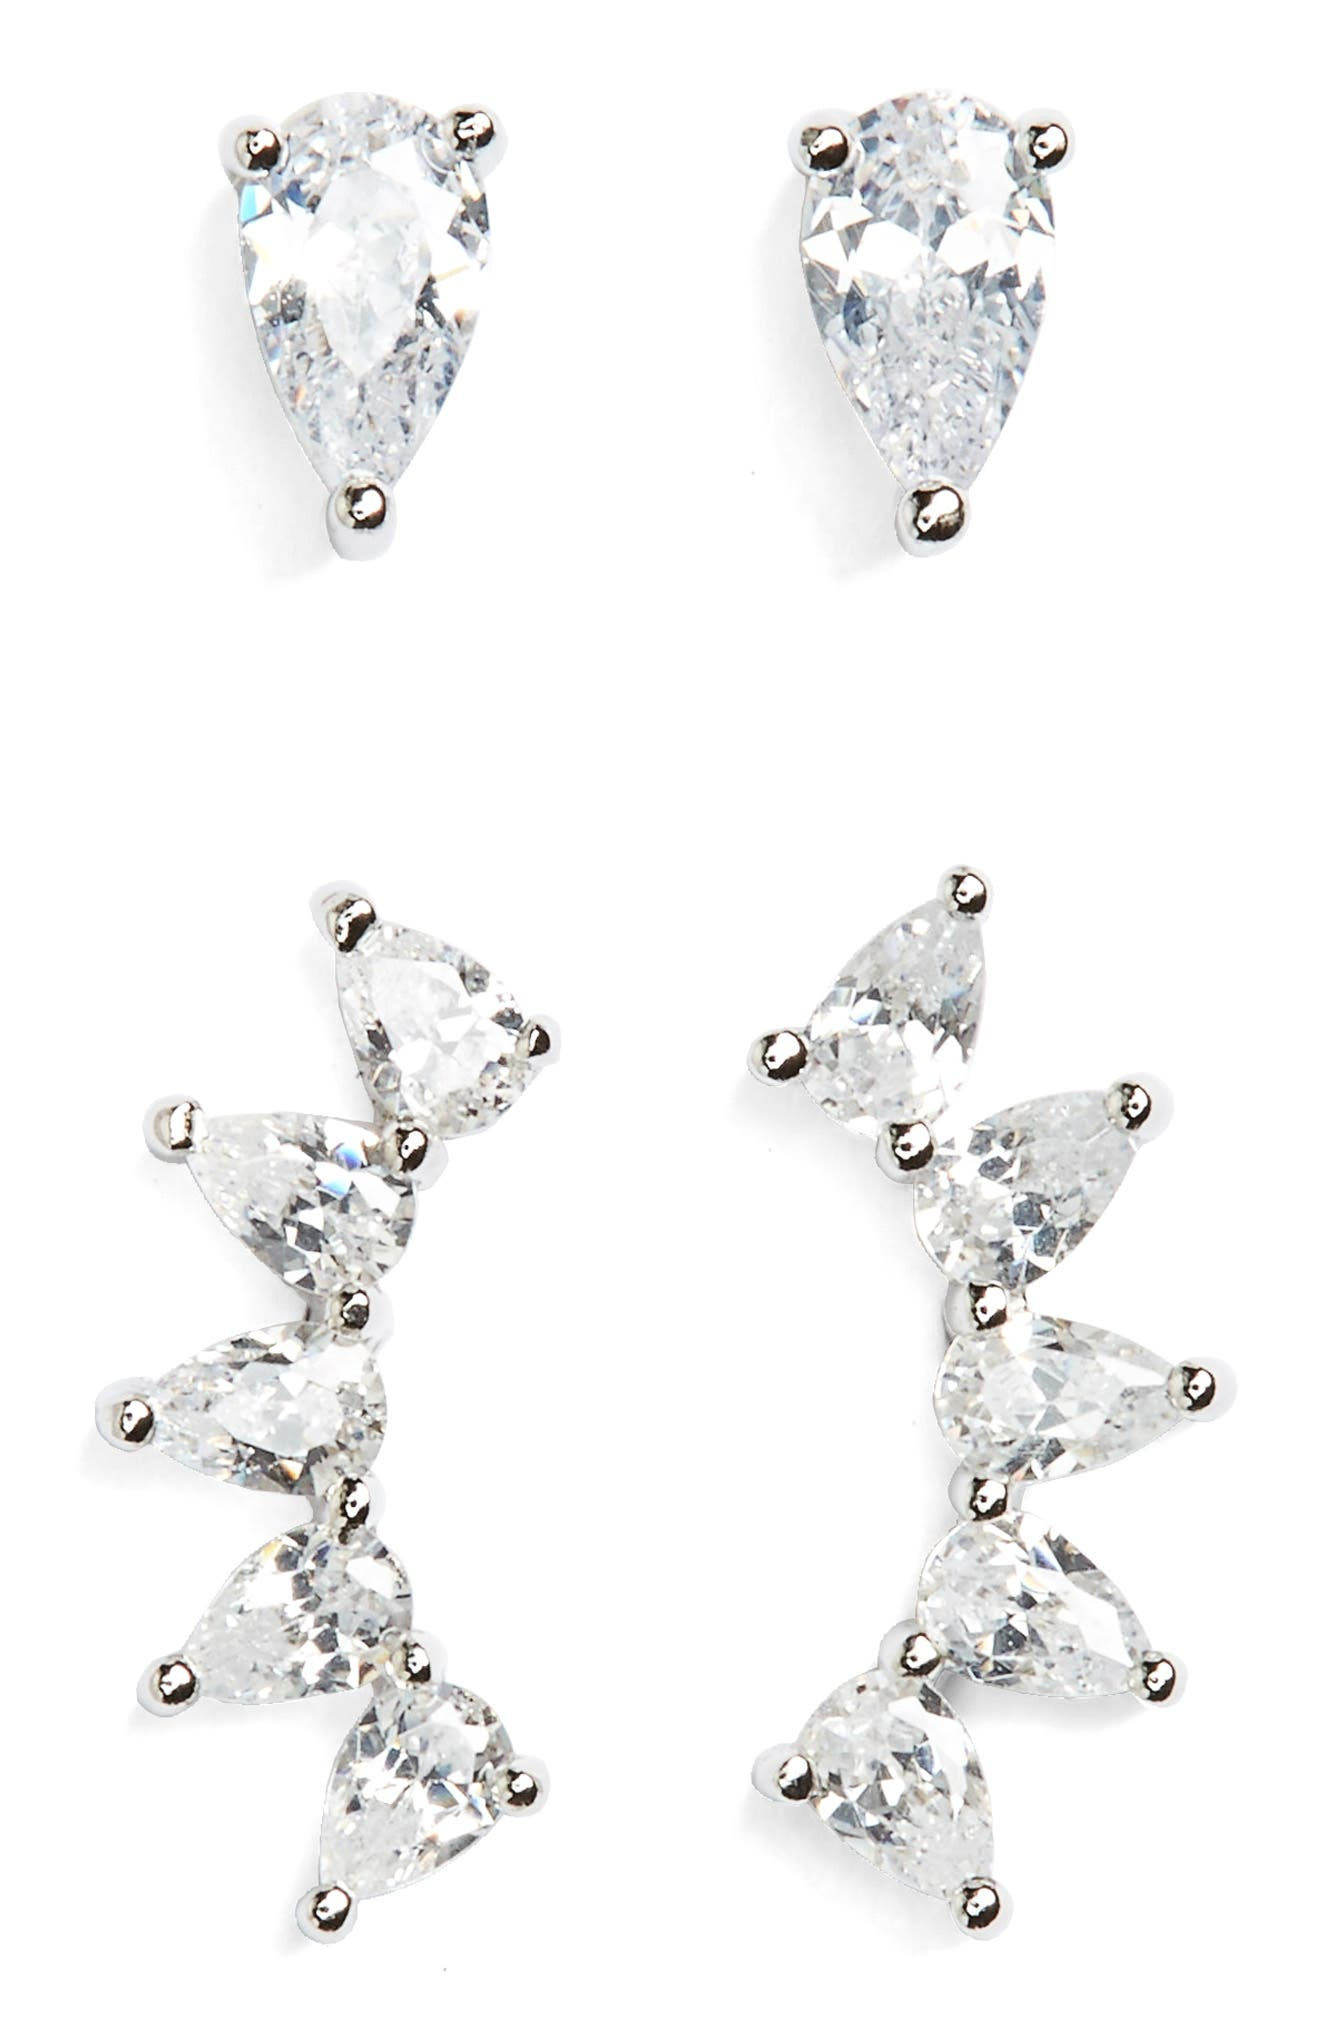 Set of 2 Pear Marquise Cubic Zirconia Earrings,                             Main thumbnail 1, color,                             040